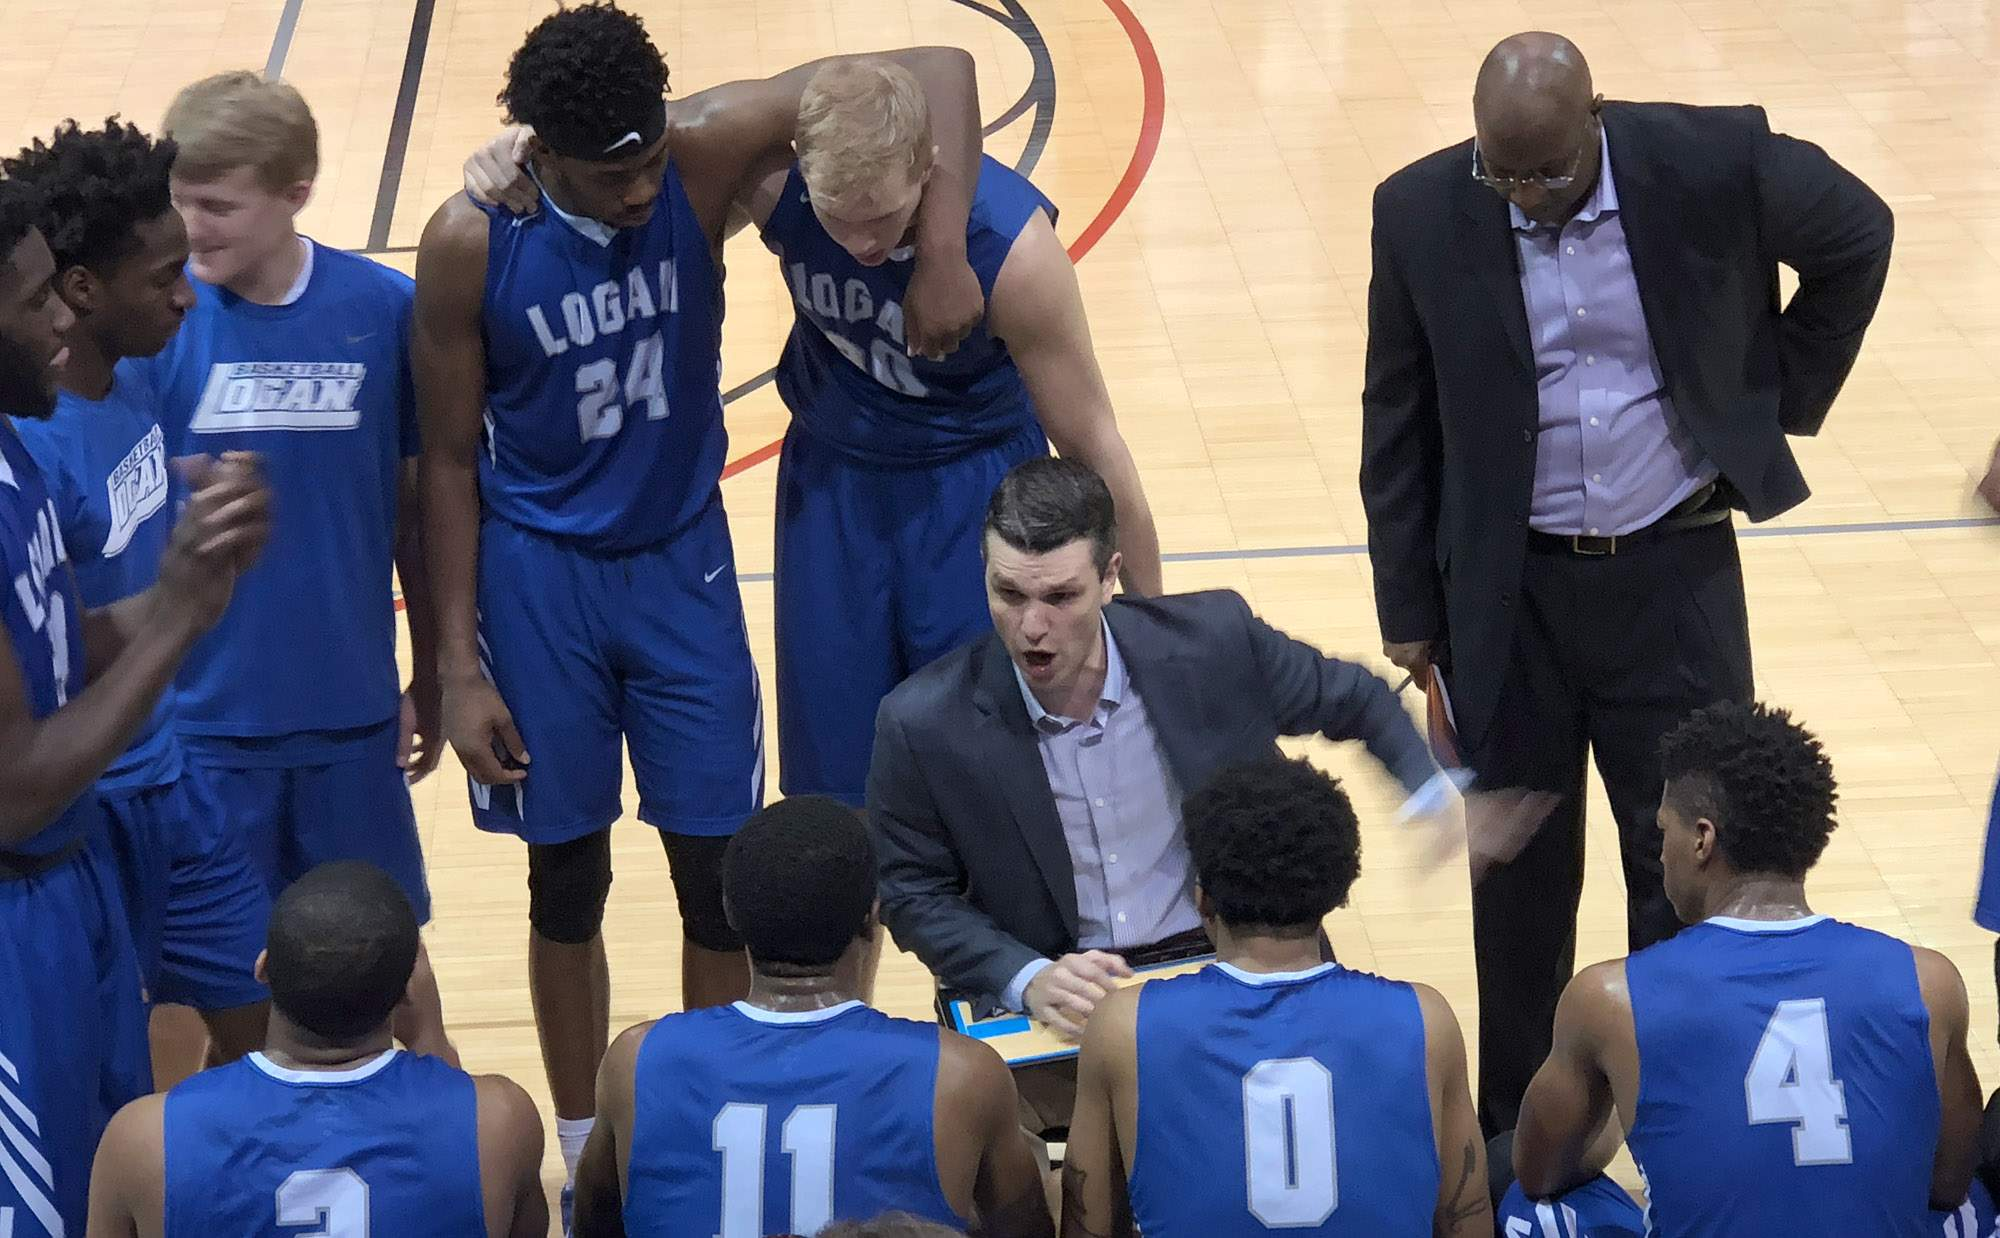 Logan head coach Kyle Smithpeters talks during a timeout Tuesday night at Wabash Valley College.